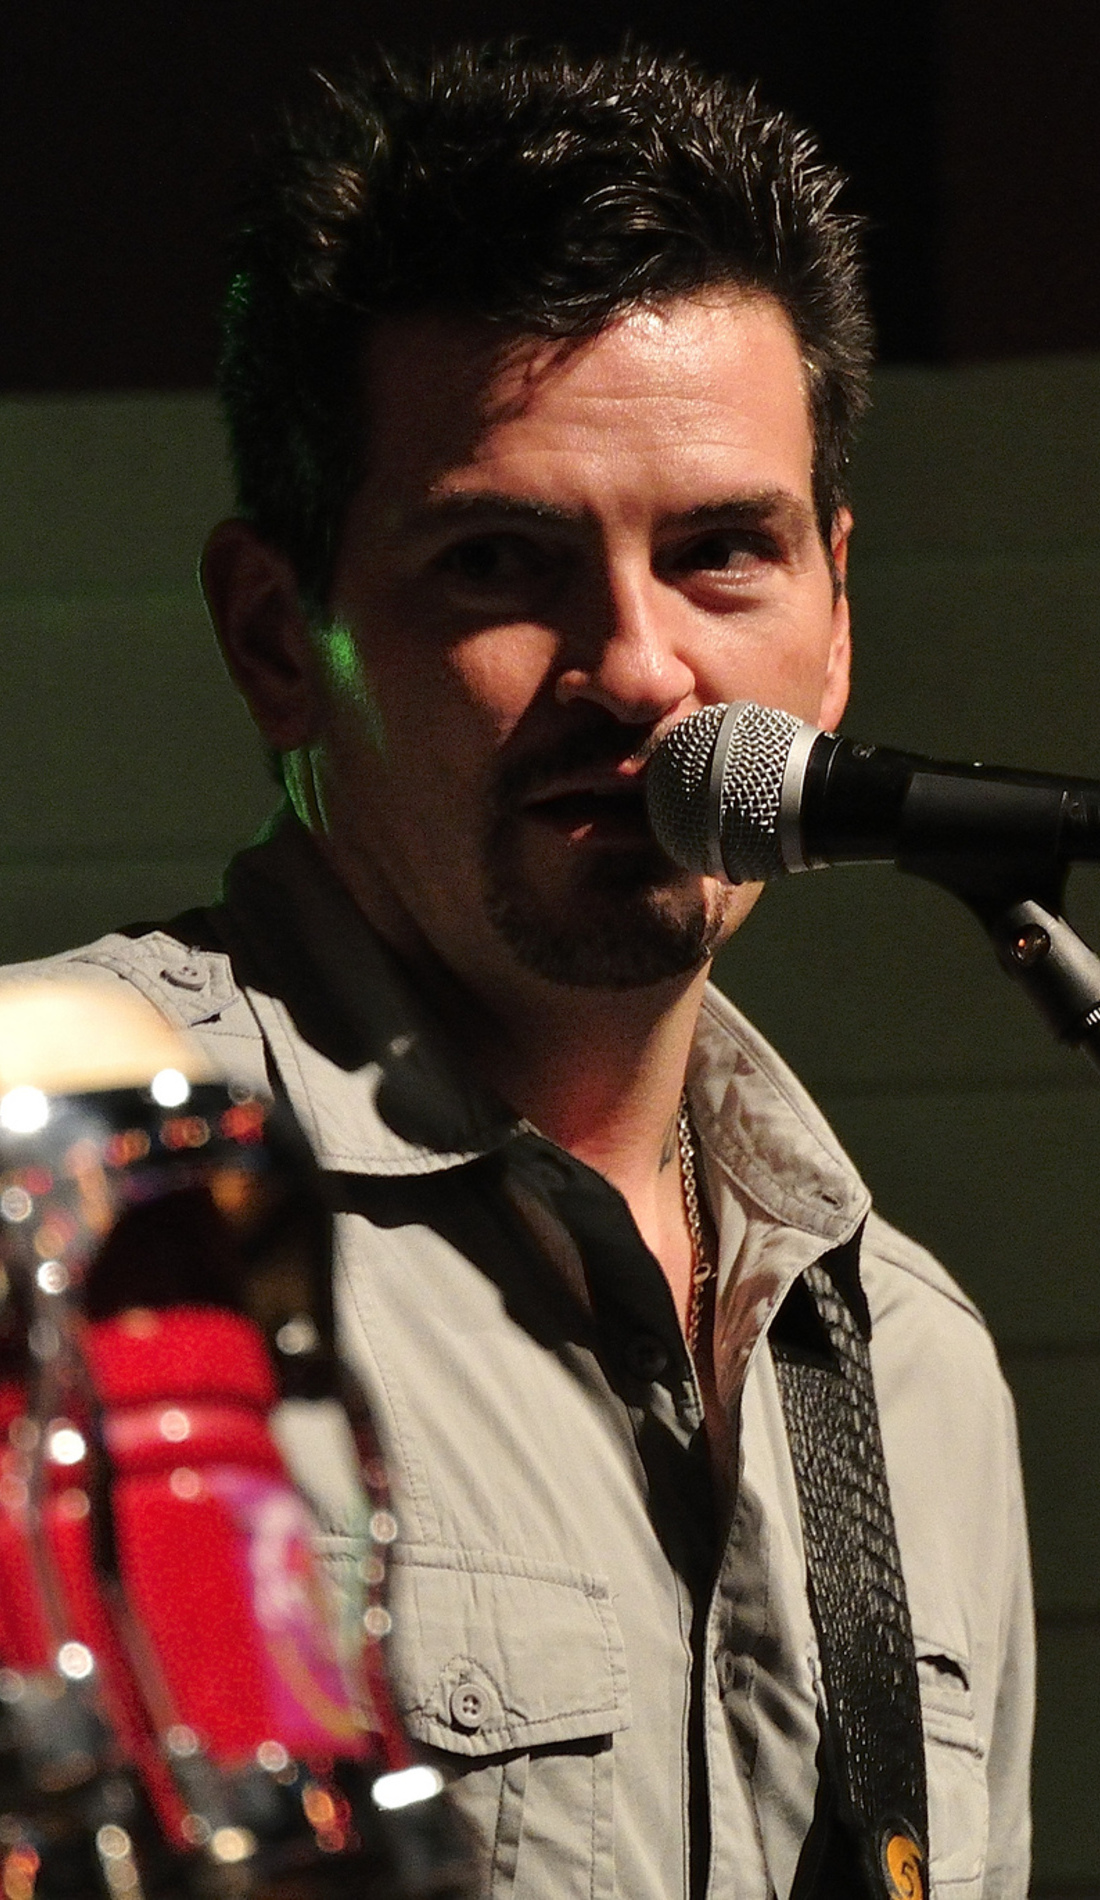 A Mike Zito live event